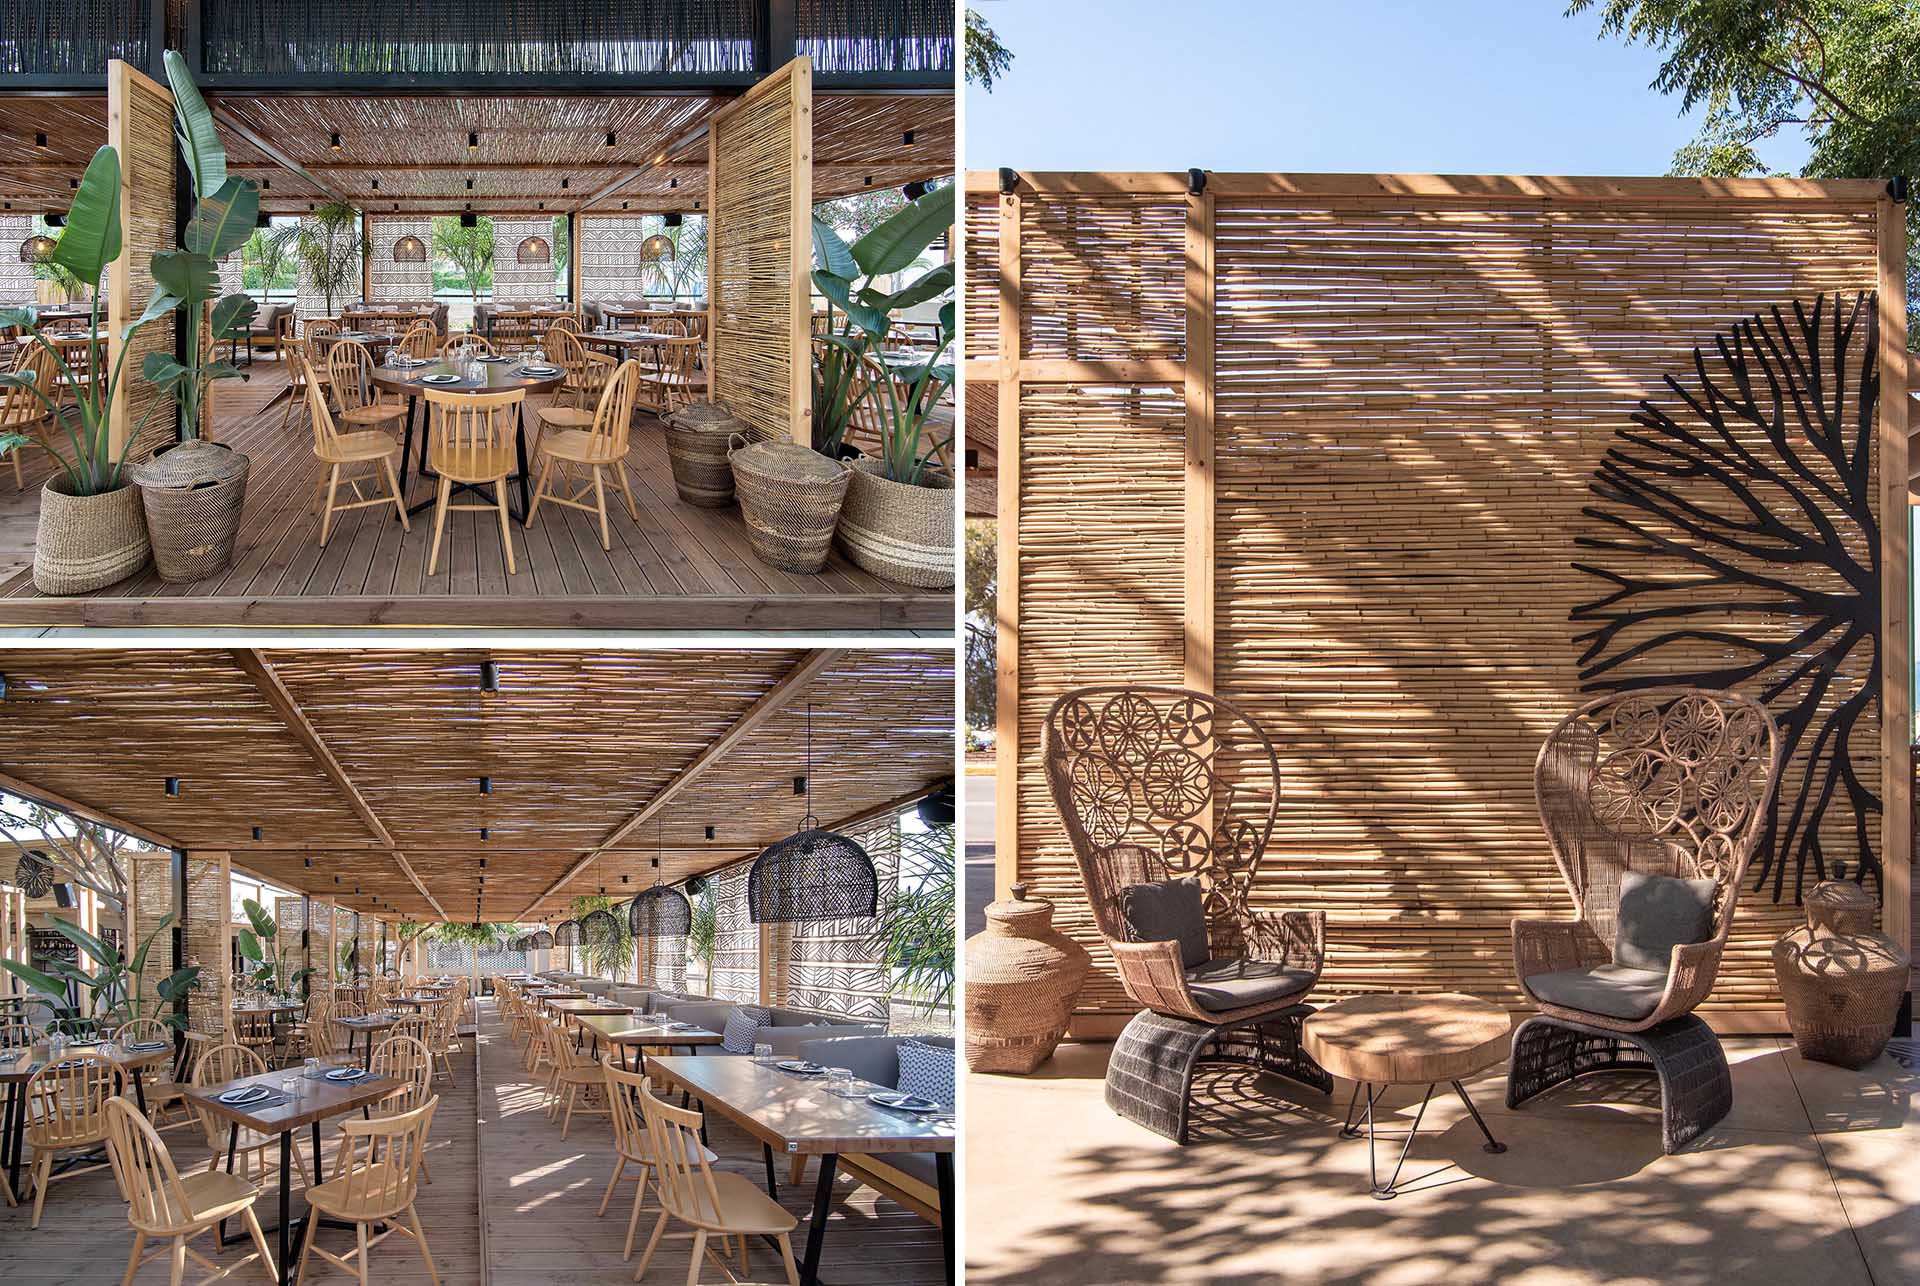 Designed with a beach aesthetic in mind, this modern bar and restaurant showcases natural materials, like reed, throughout its interior.